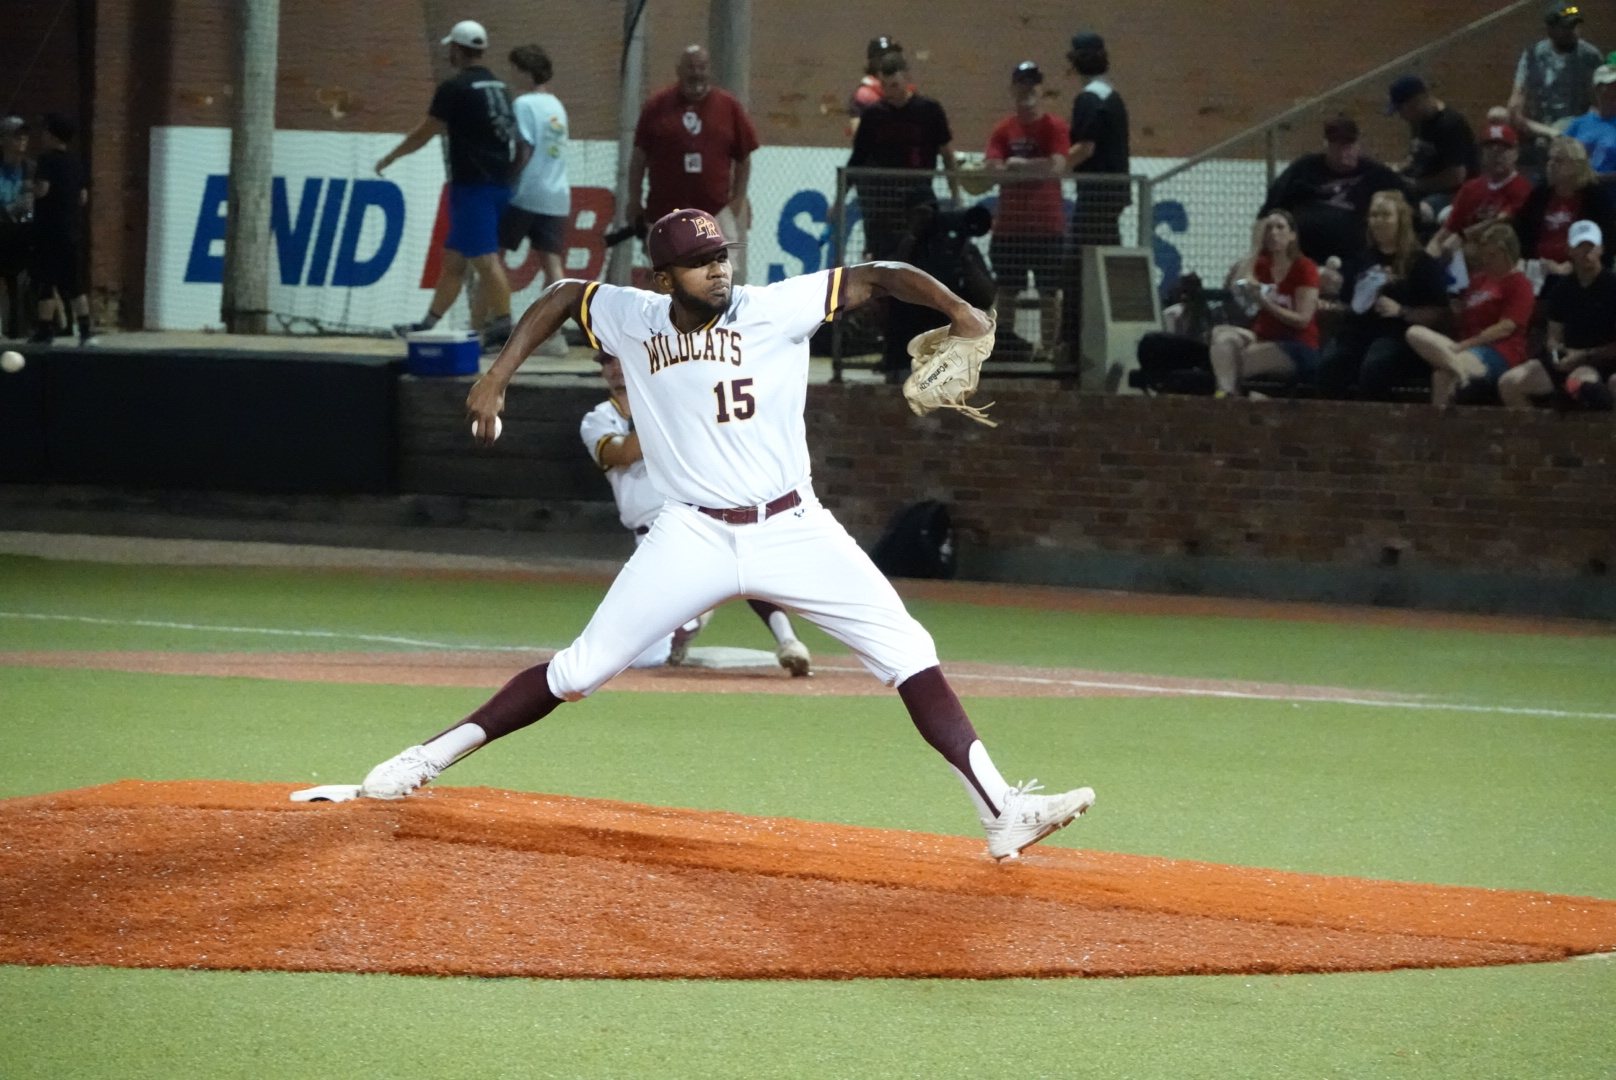 Pearl River will look to respond after first World Series loss